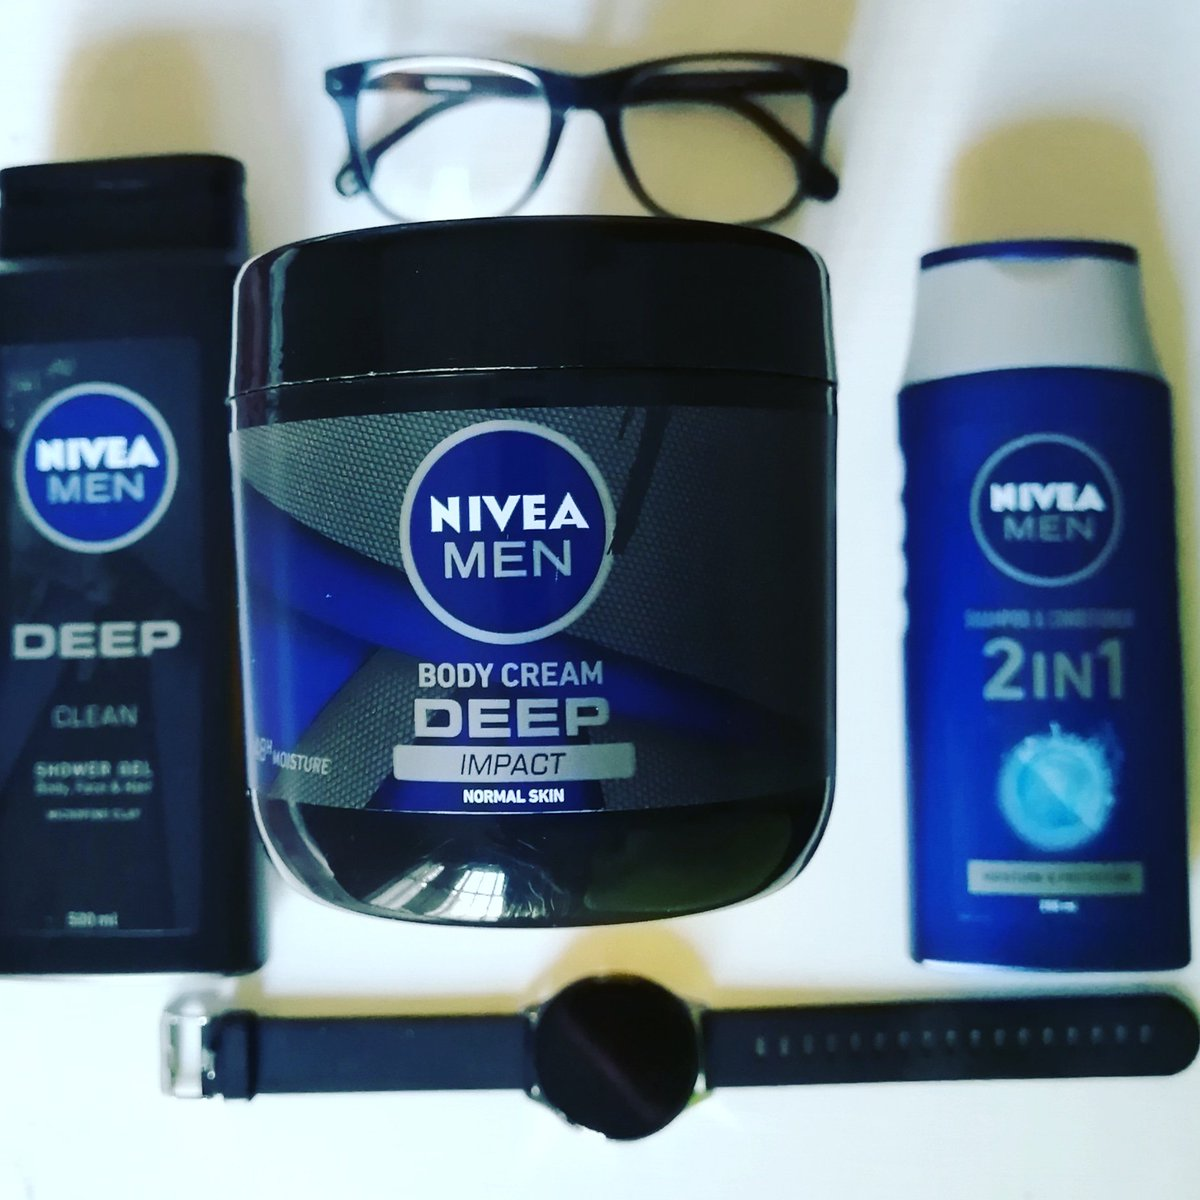 Winter is upon us and your skin needs a little extra loving. We've teamed up with @rubybox_beauty & NiveaSA to test and review the new Nivea Men Deep Impact Body Cream.   #rubybox #rubyboxNiveaMen #NIVEADEEP #NIVEAMen #NIVEAMenBody #menskincare #lunovalifestylepic.twitter.com/V1w32q4dPX